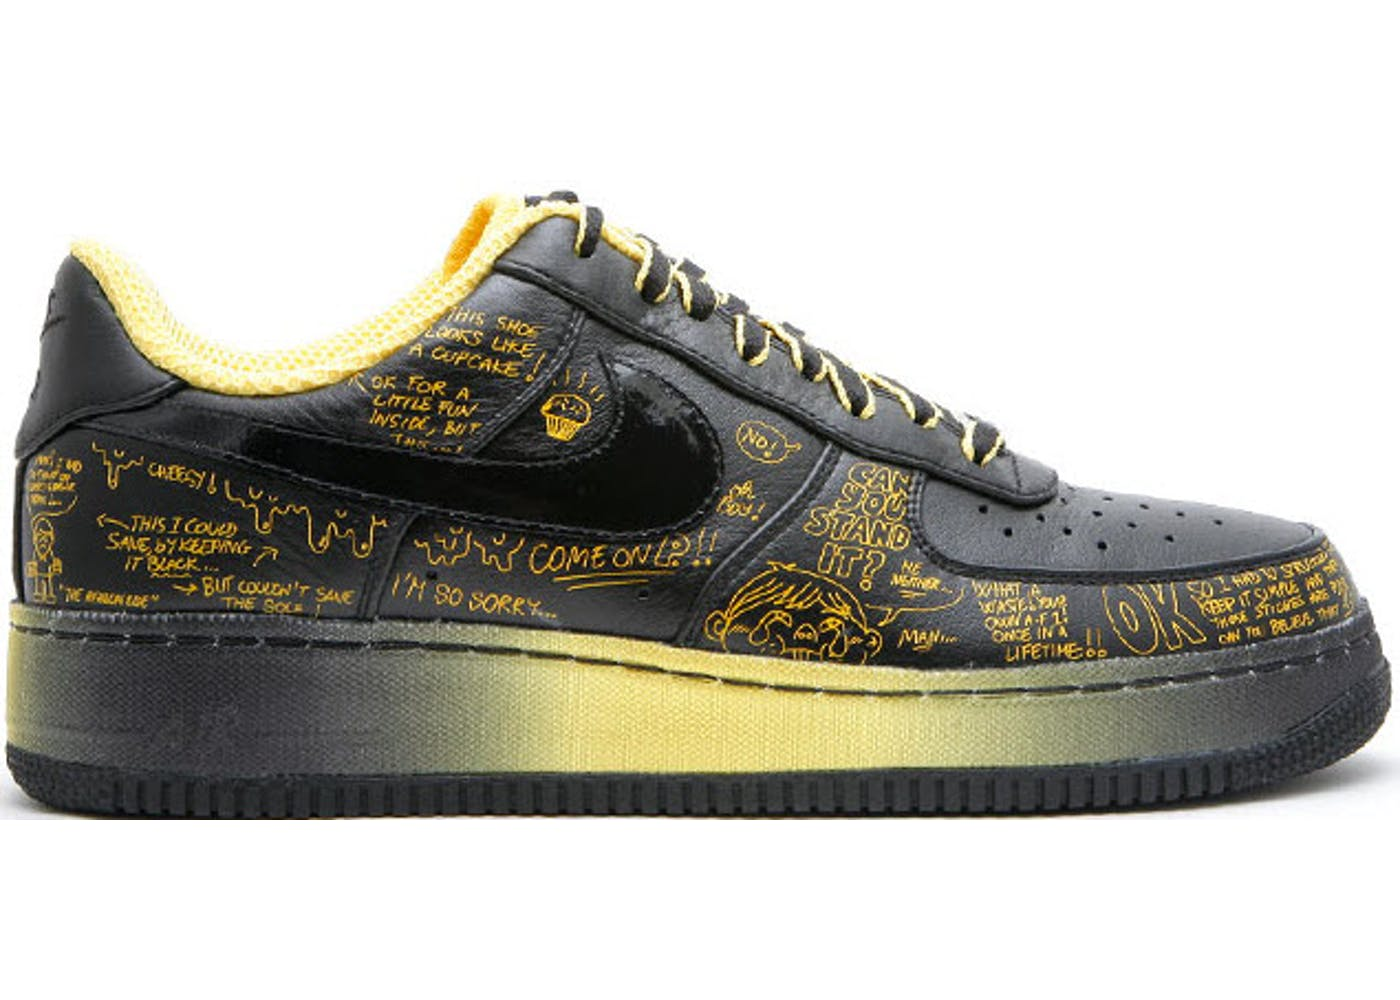 eaefe2bb1d6 ... Nike Livestrong x Busy P Air Force 1 Black Varsity Maize 2016 sneakers air  force 435ffa0  Air Force 1 Low Sup TZ LAF ...